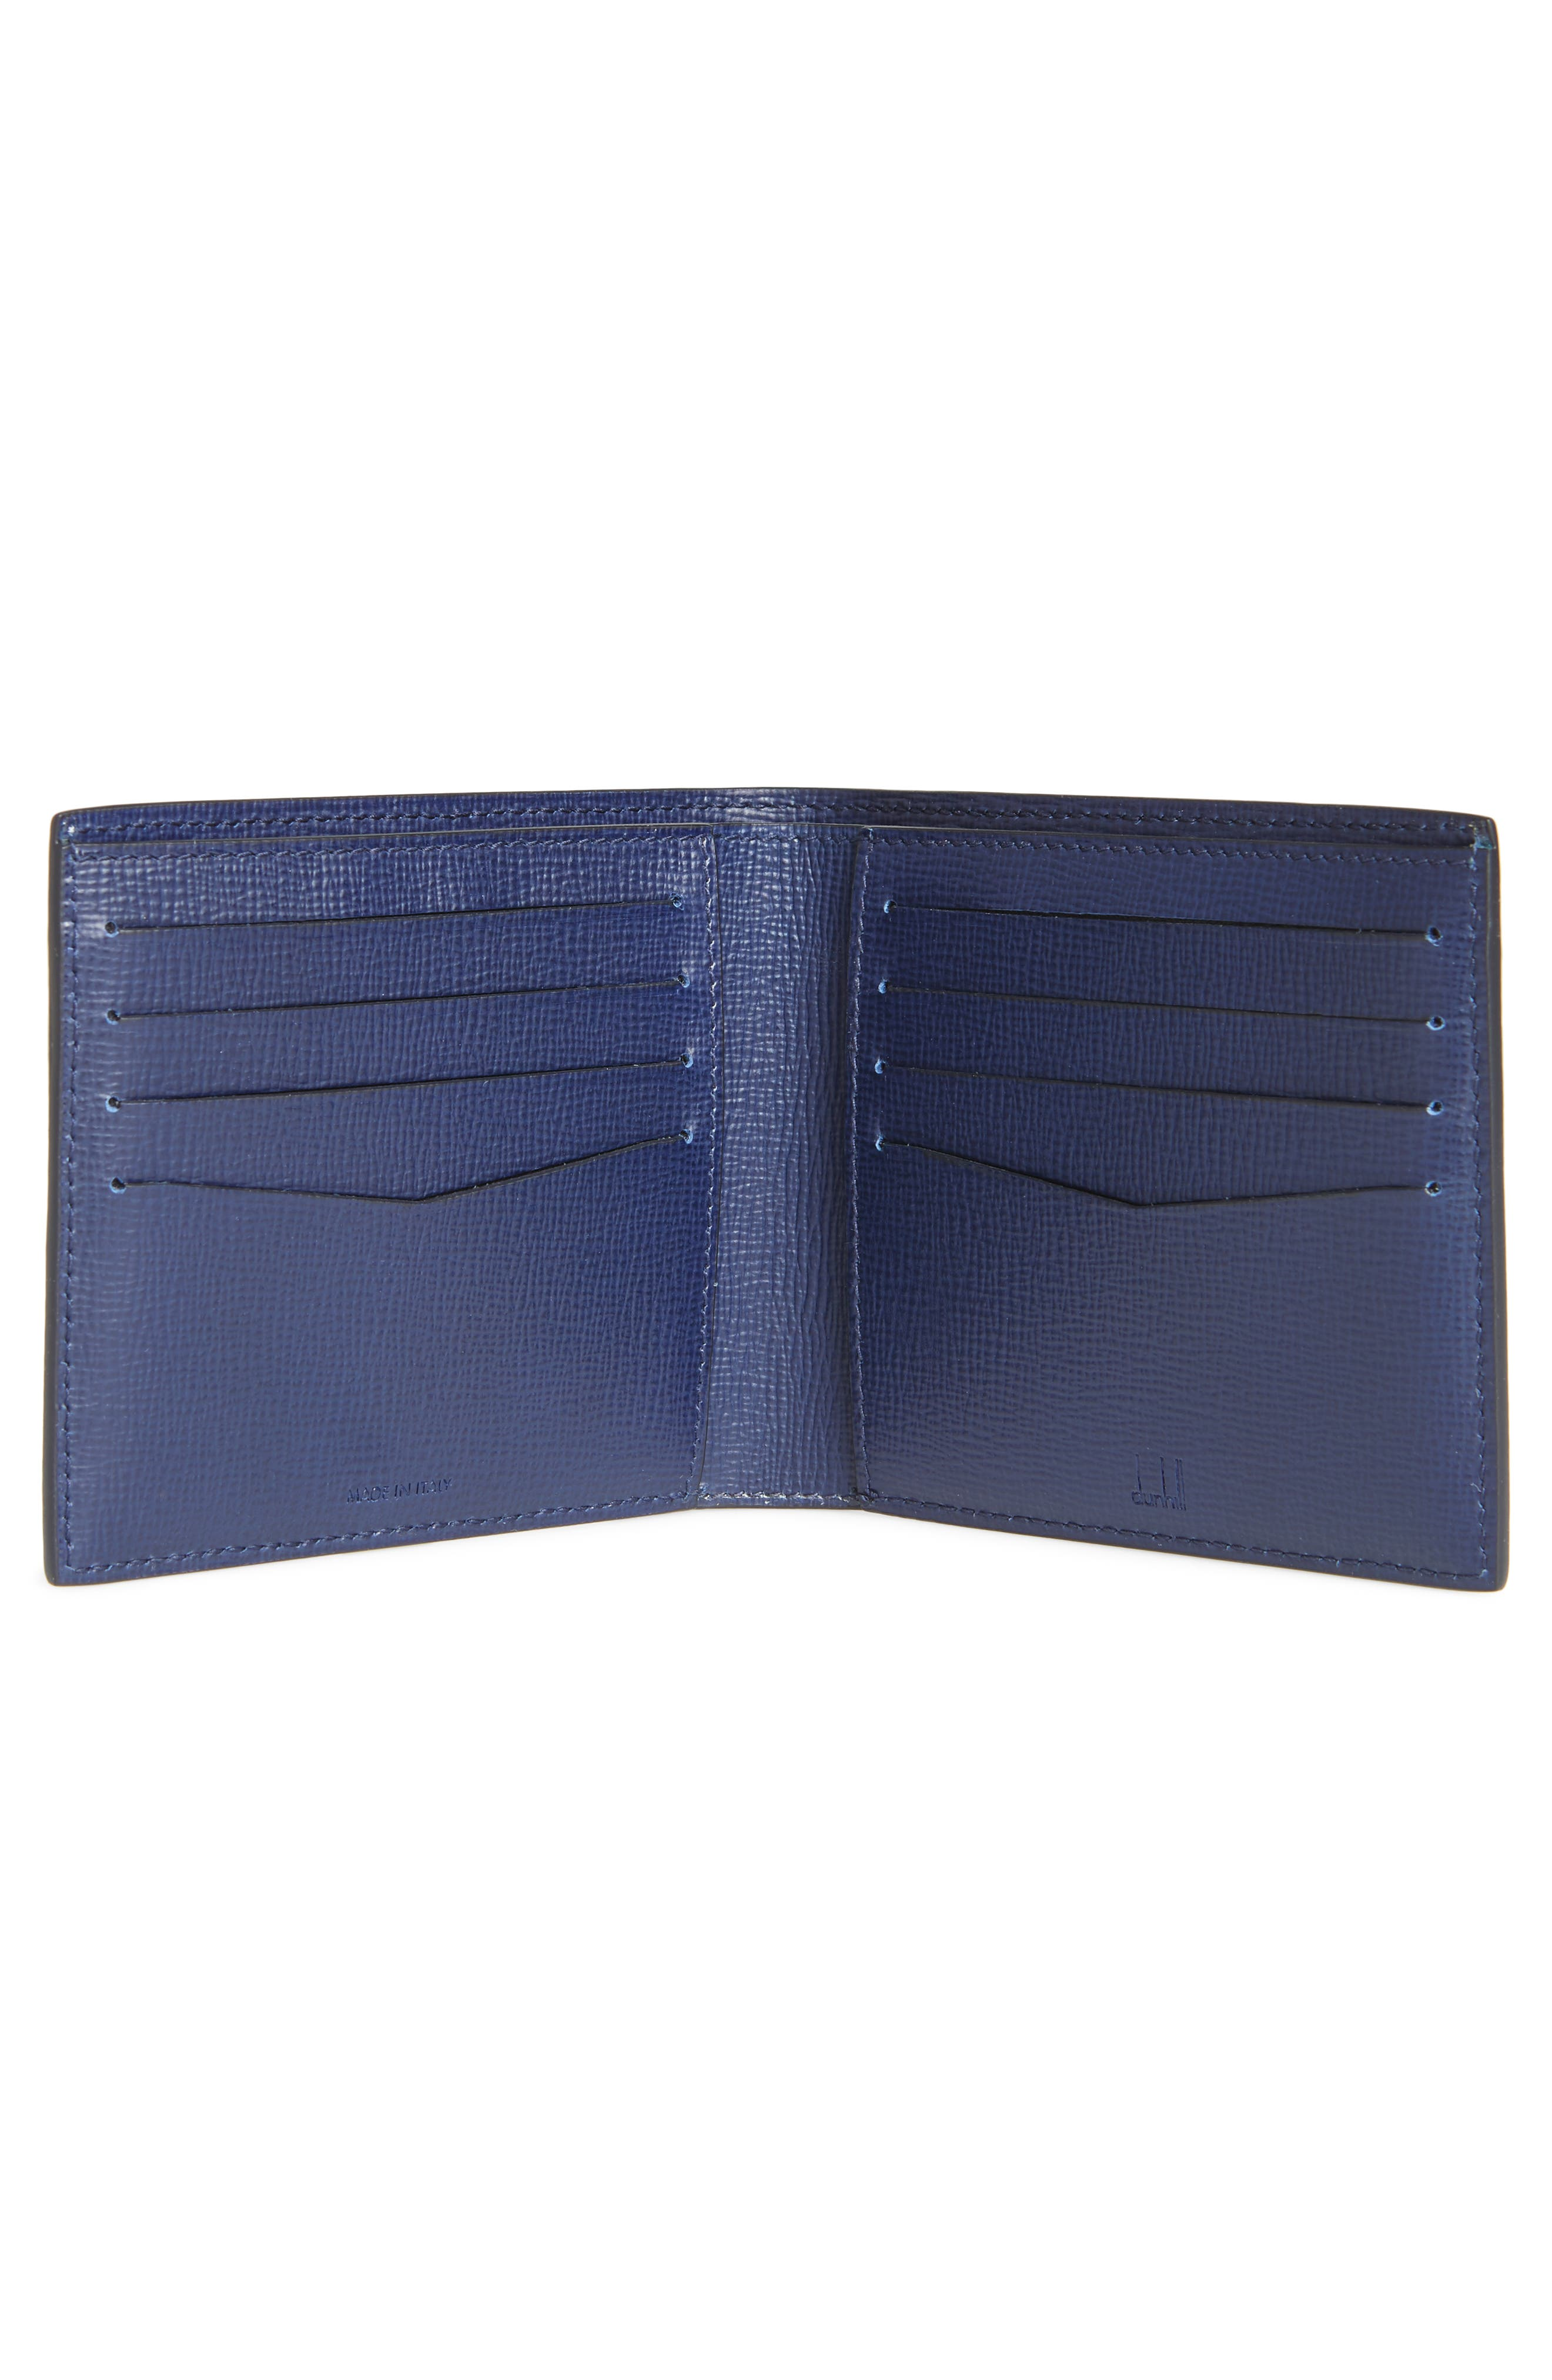 Cadogan Leather Wallet,                             Alternate thumbnail 2, color,                             Navy